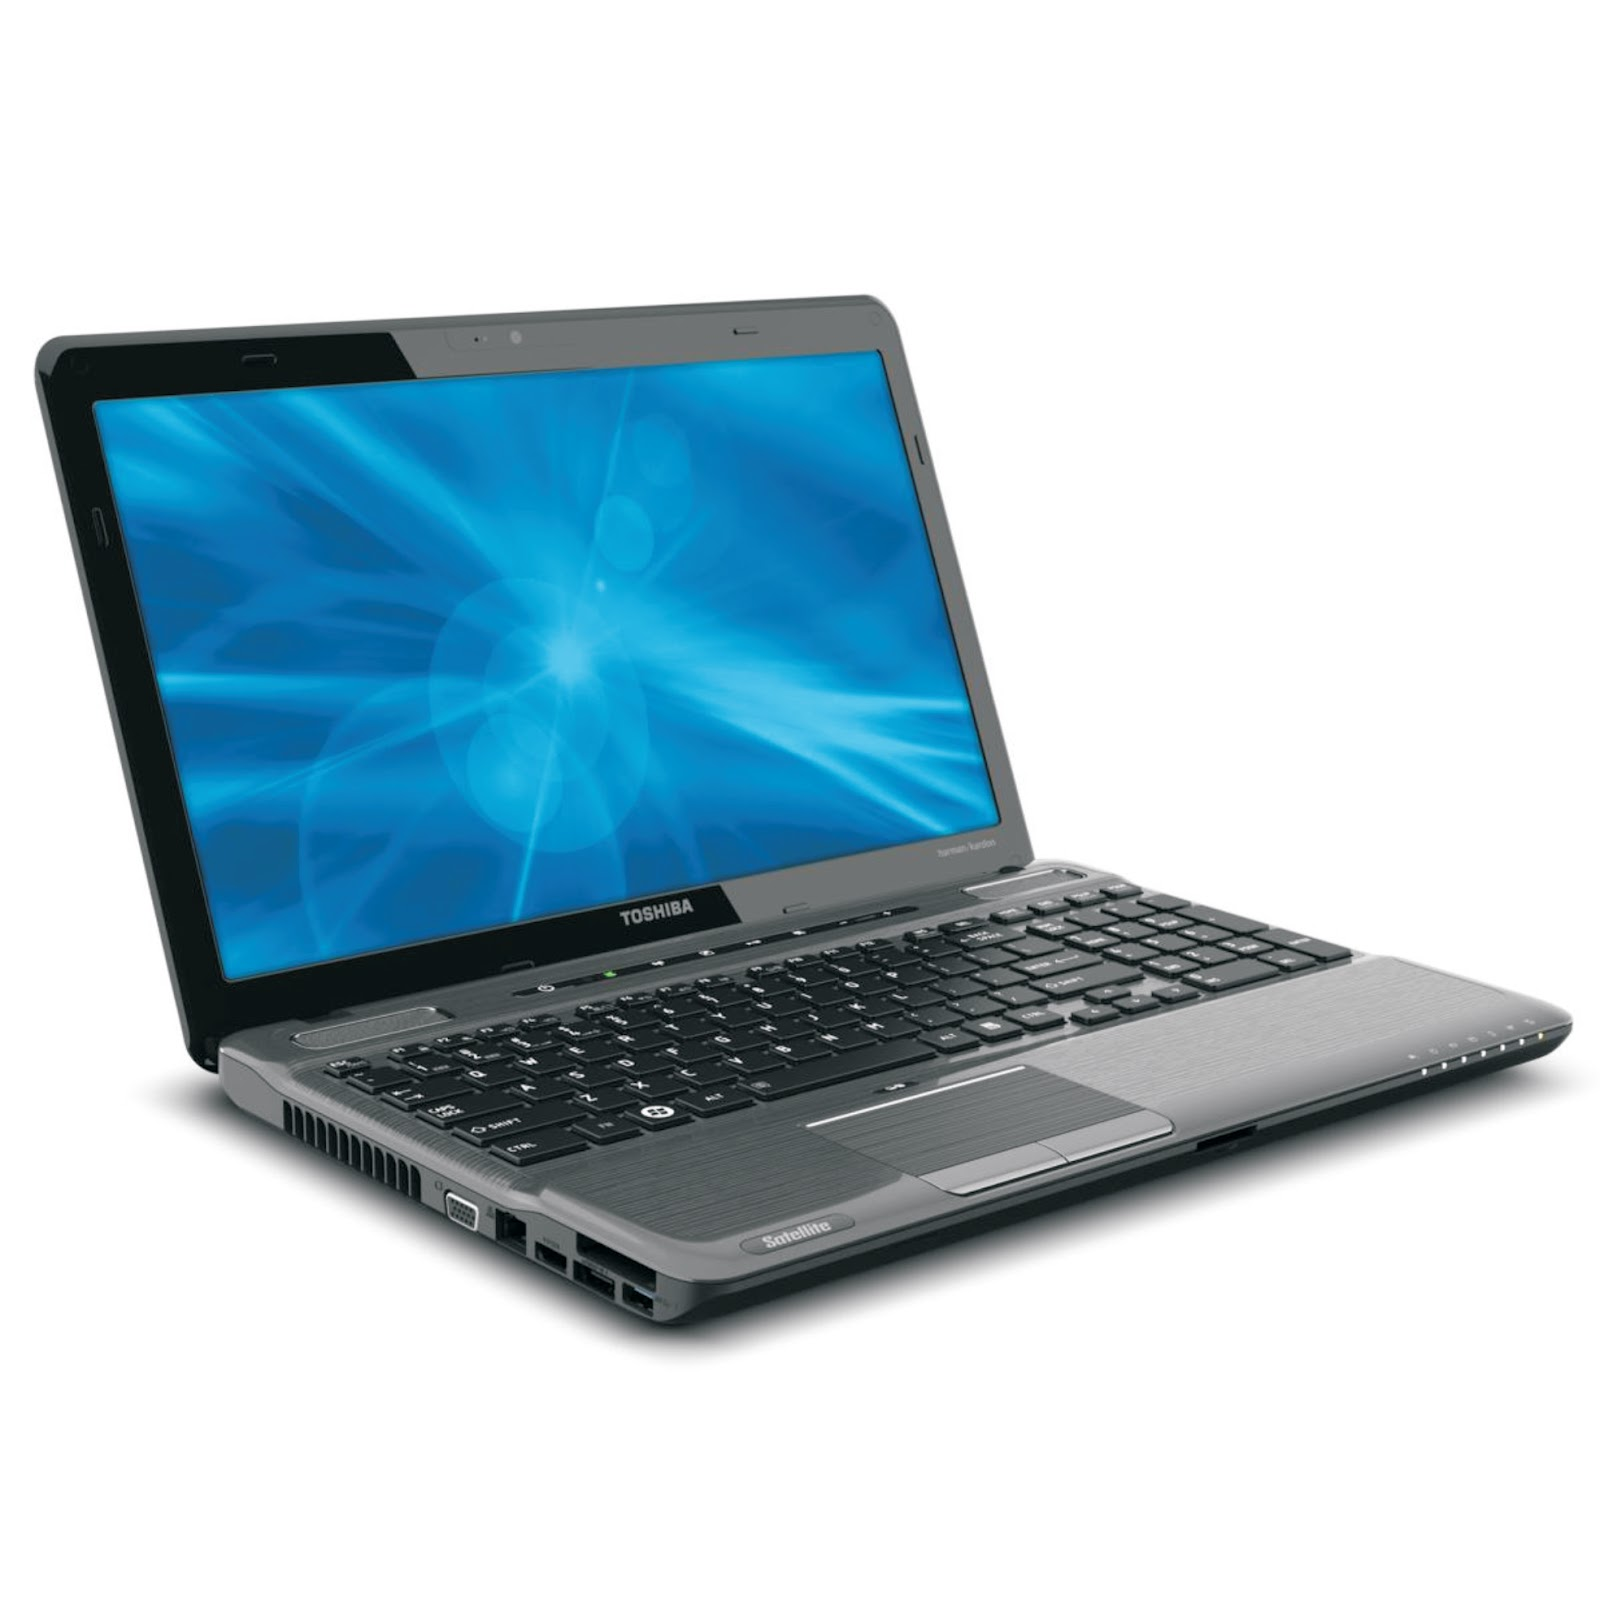 156 inch laptop clipart hd.